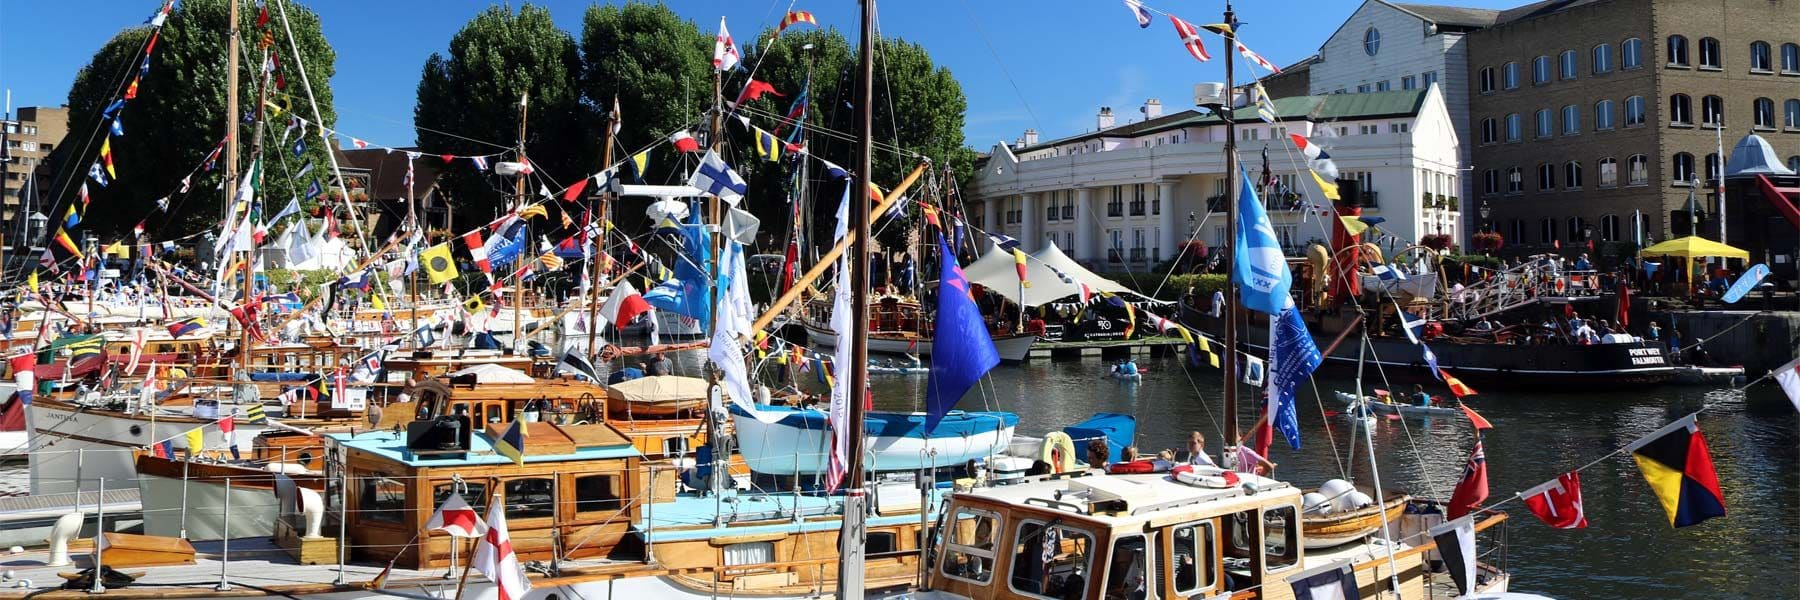 St. Katharine Docks during the Classic Boat Festival